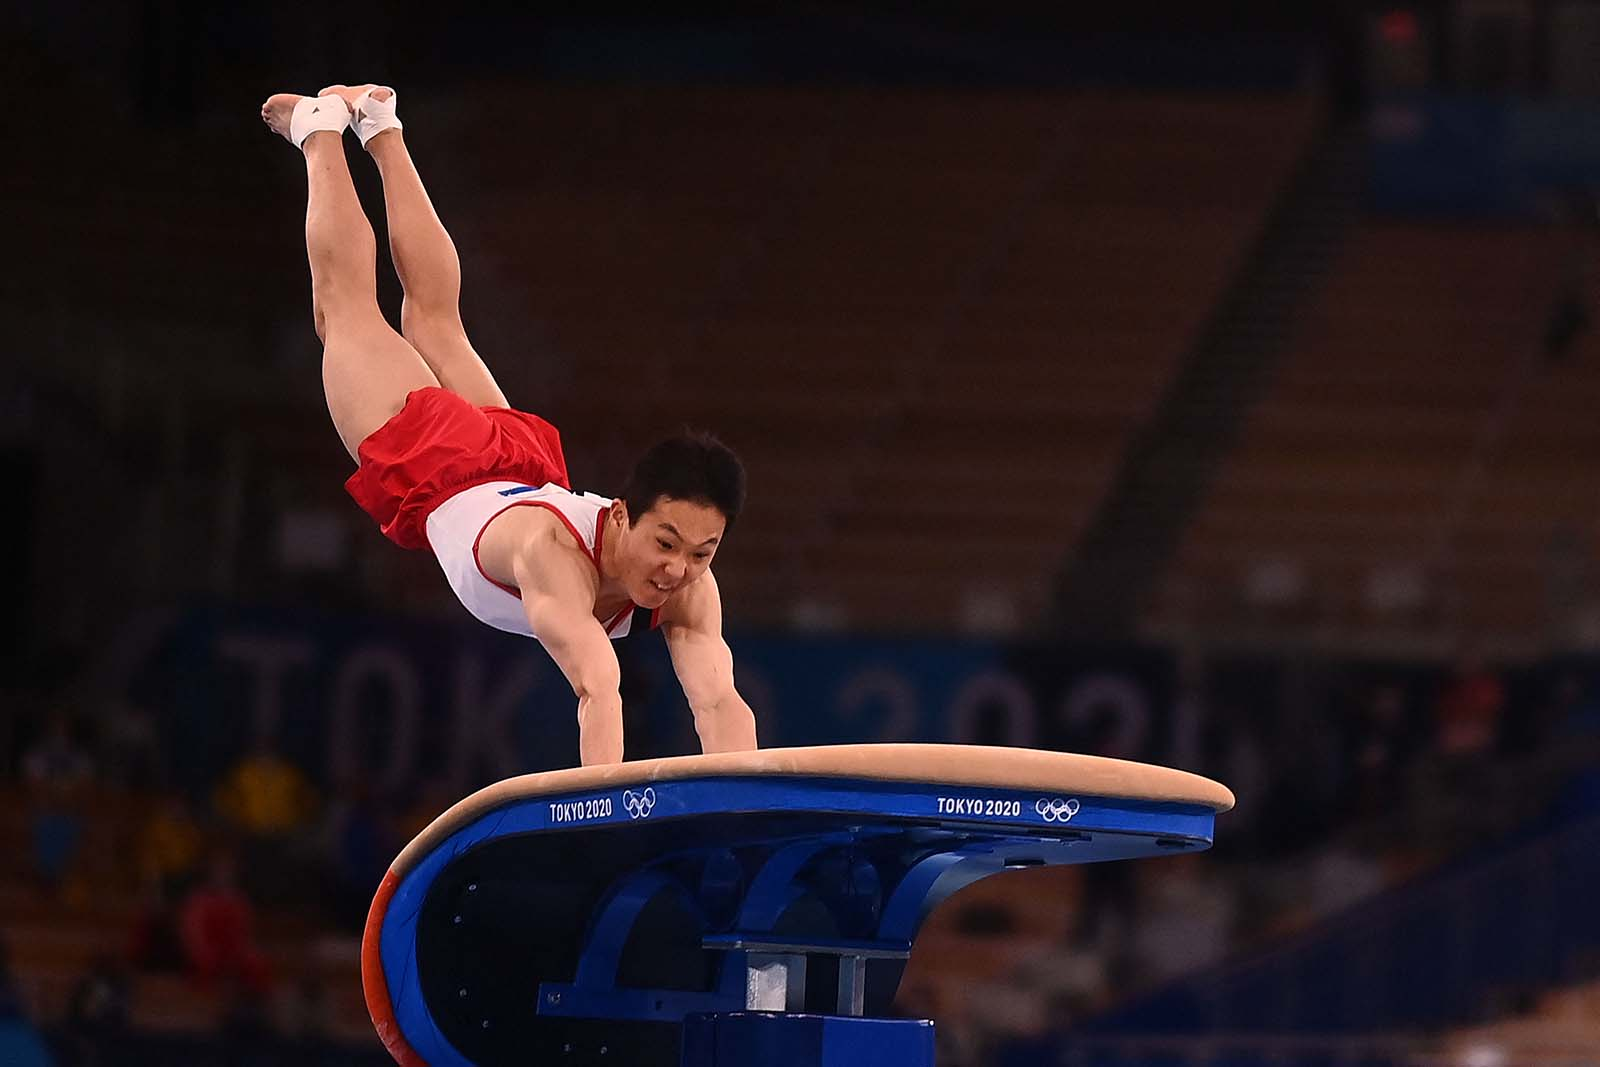 South Korea's Shin Jea-hwan competes in the artistic gymnastics men's vault final on August 2.